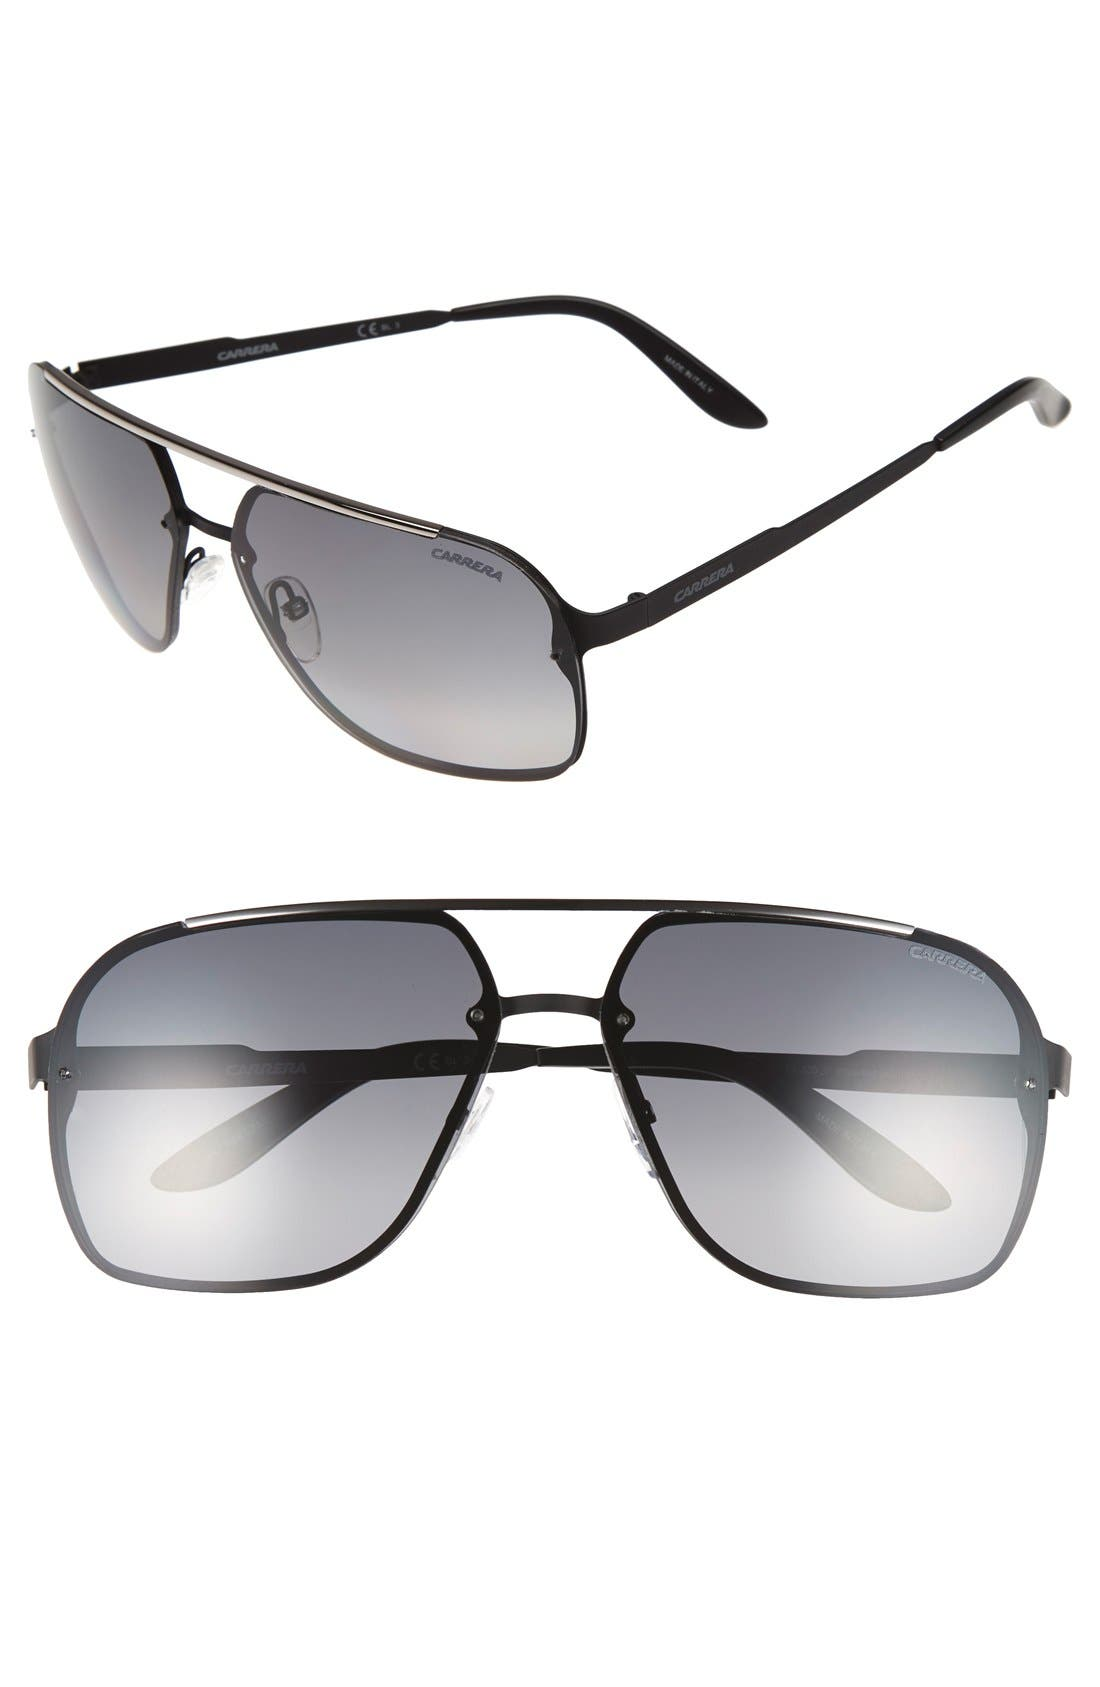 Main Image - Carrera Eyewear '91/S' 64mm Polarized Sunglasses